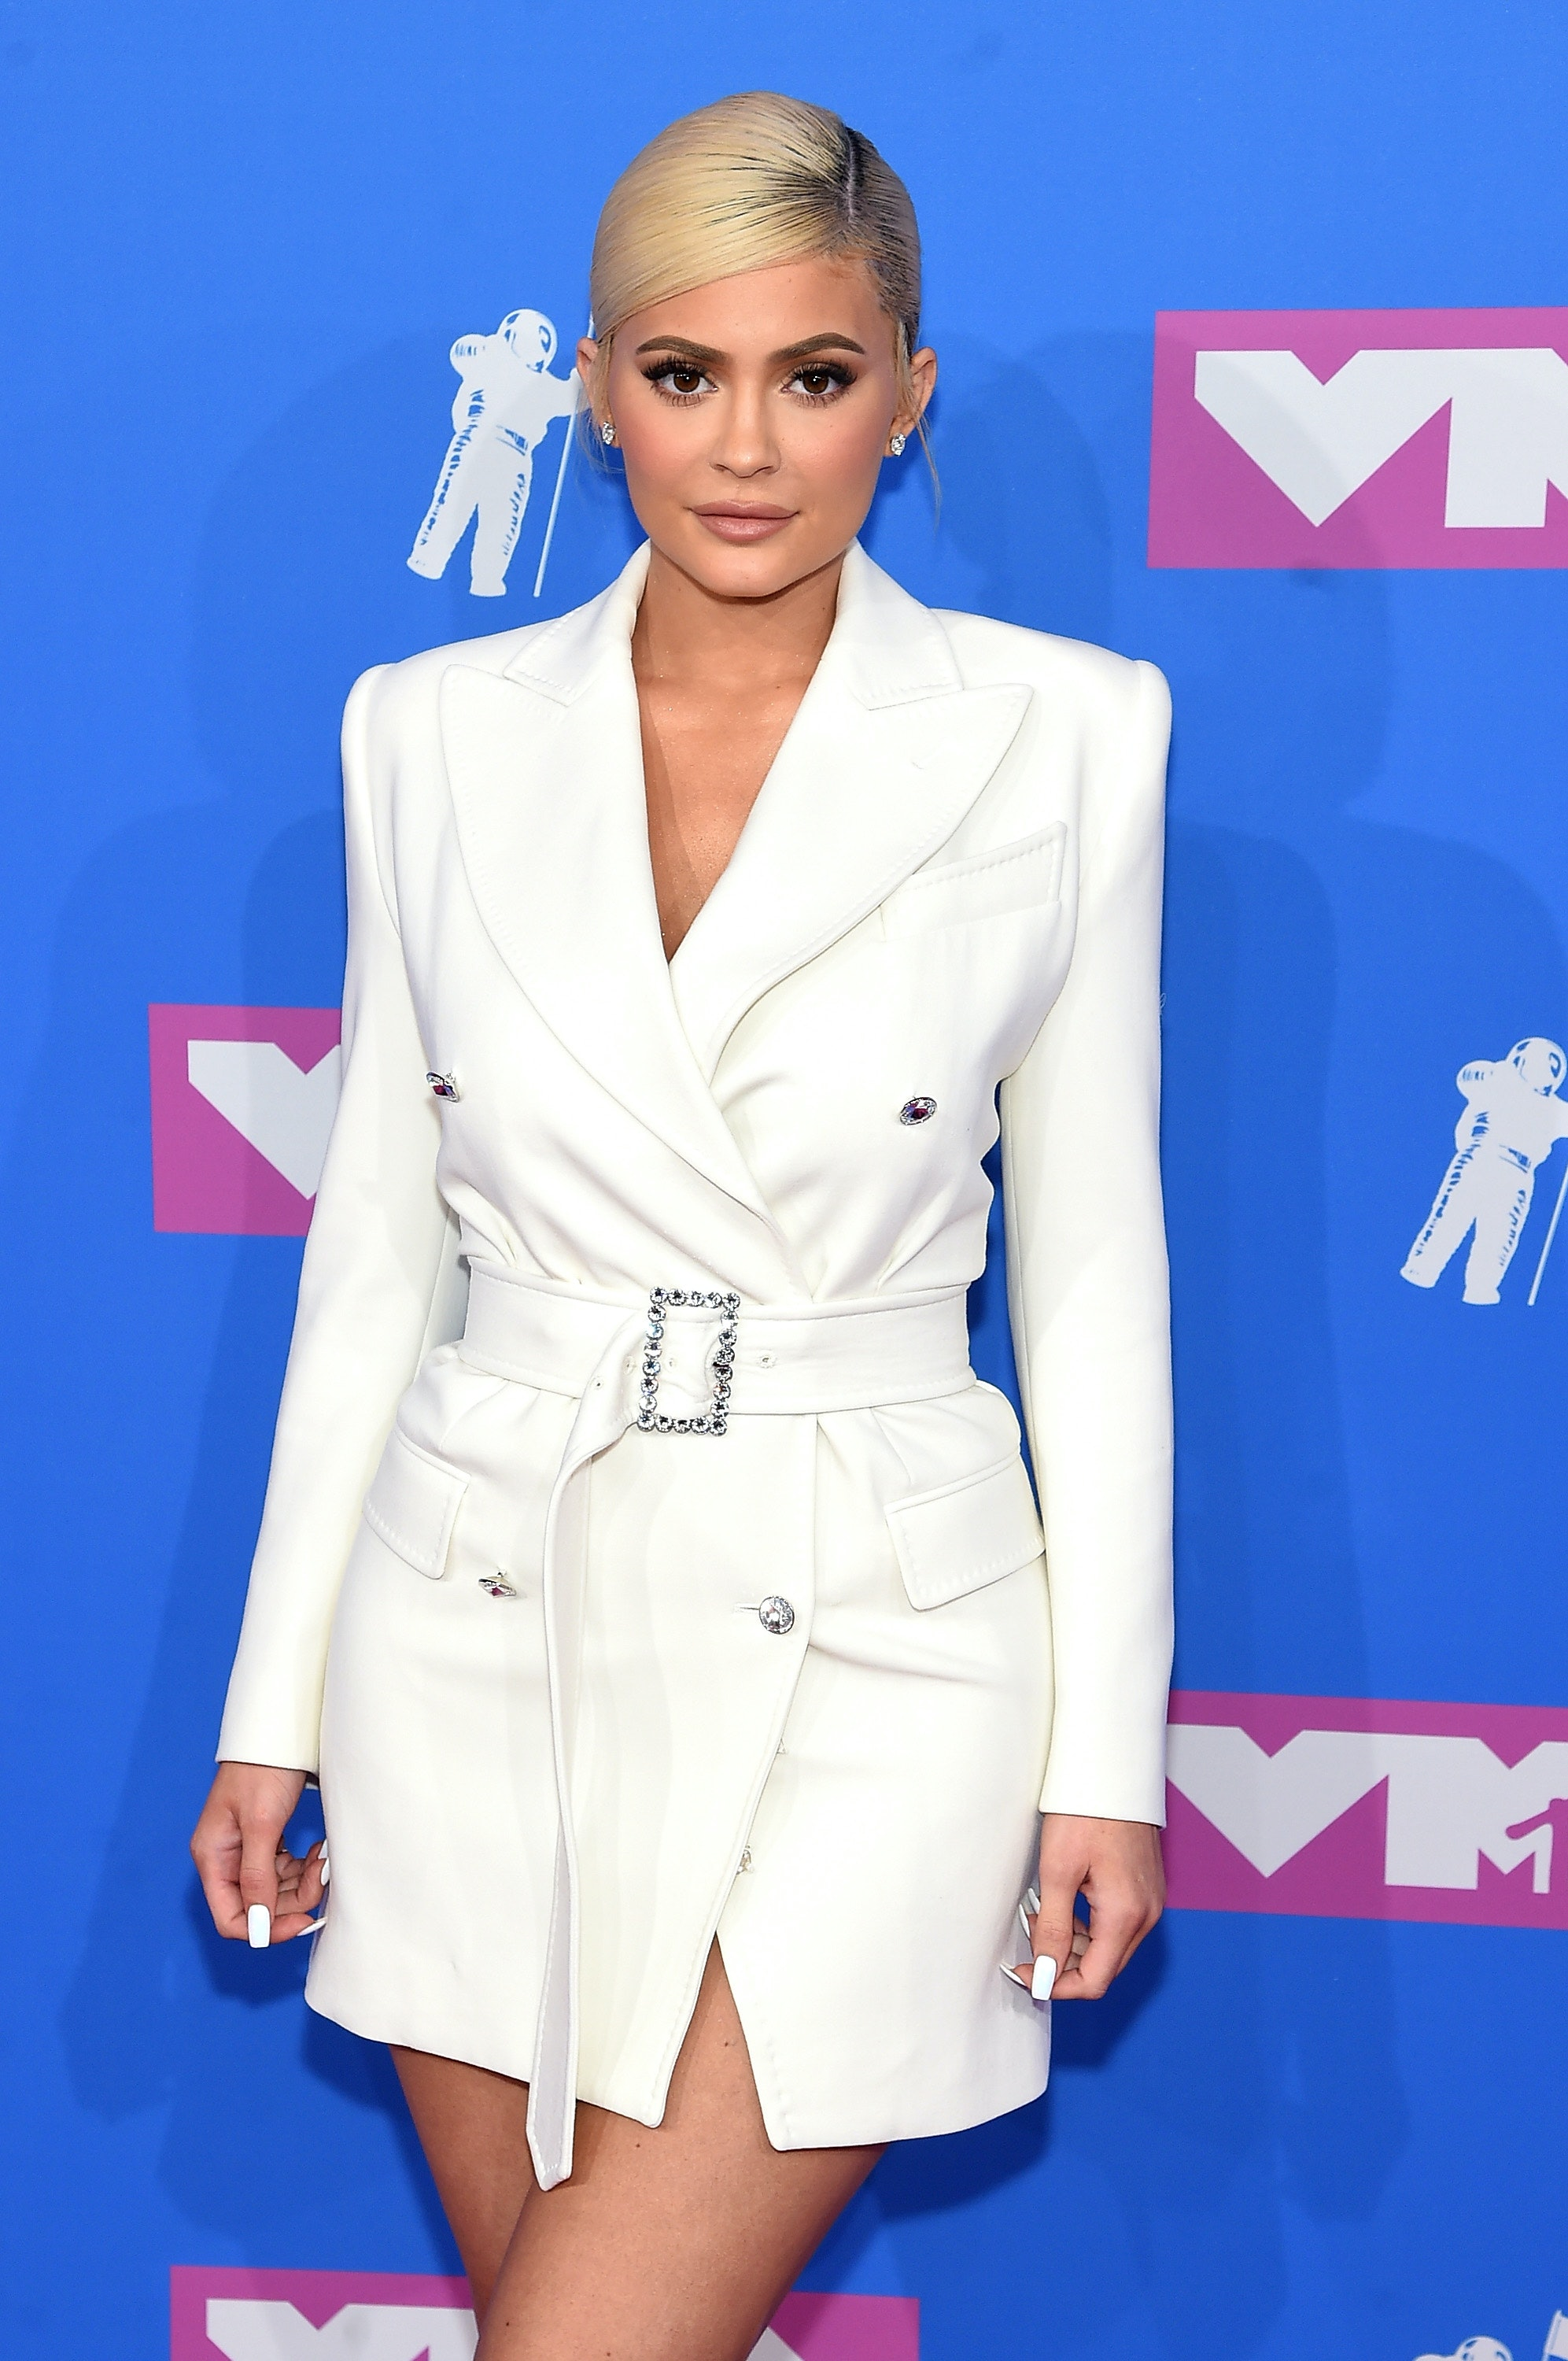 45cd14c445 Kylie Jenner s 2018 VMAs Look Is A Throwback To Her  Forbes  Cover